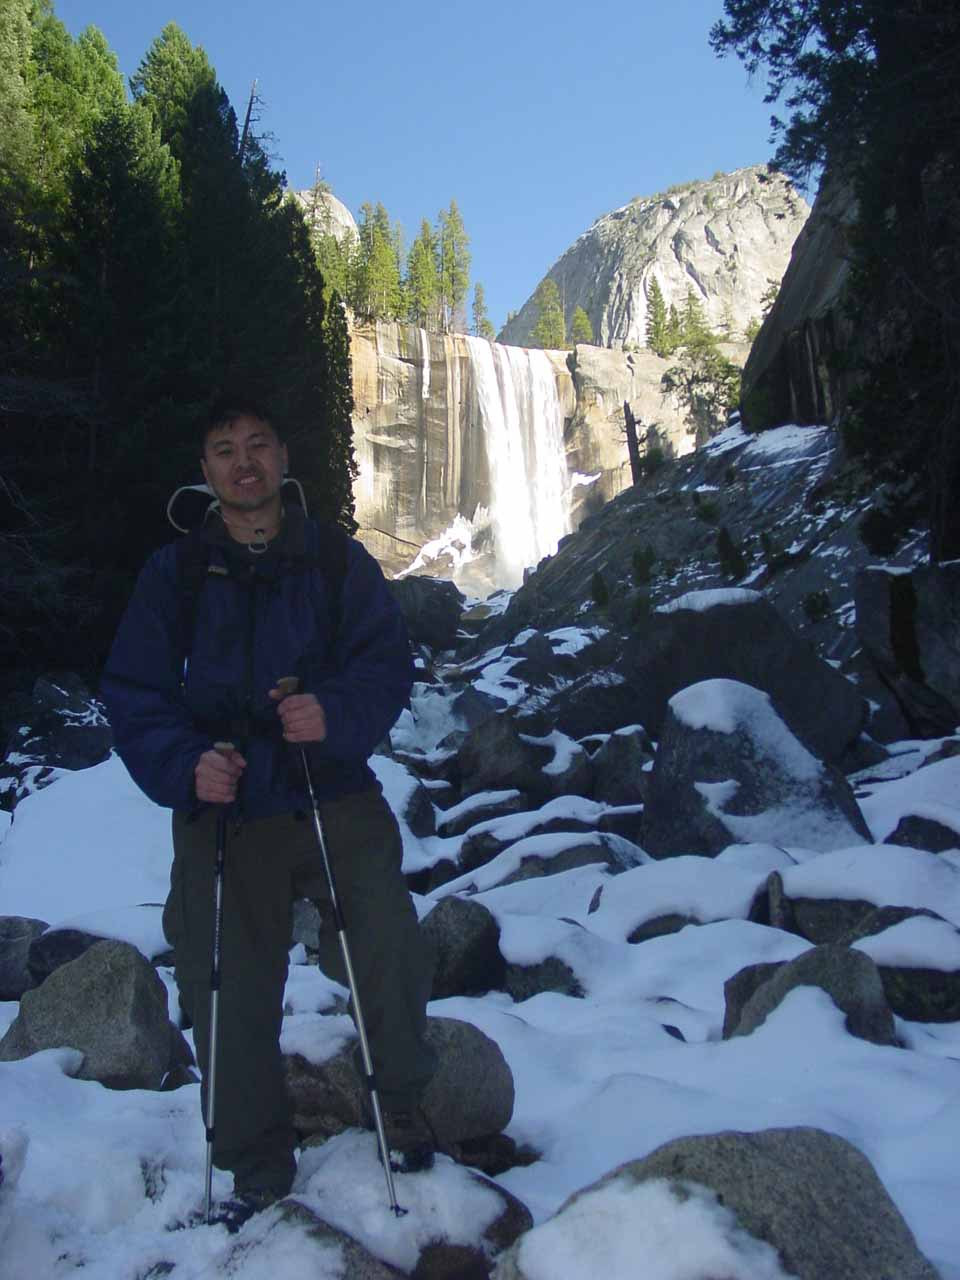 Vernal Fall with snow all over the ground